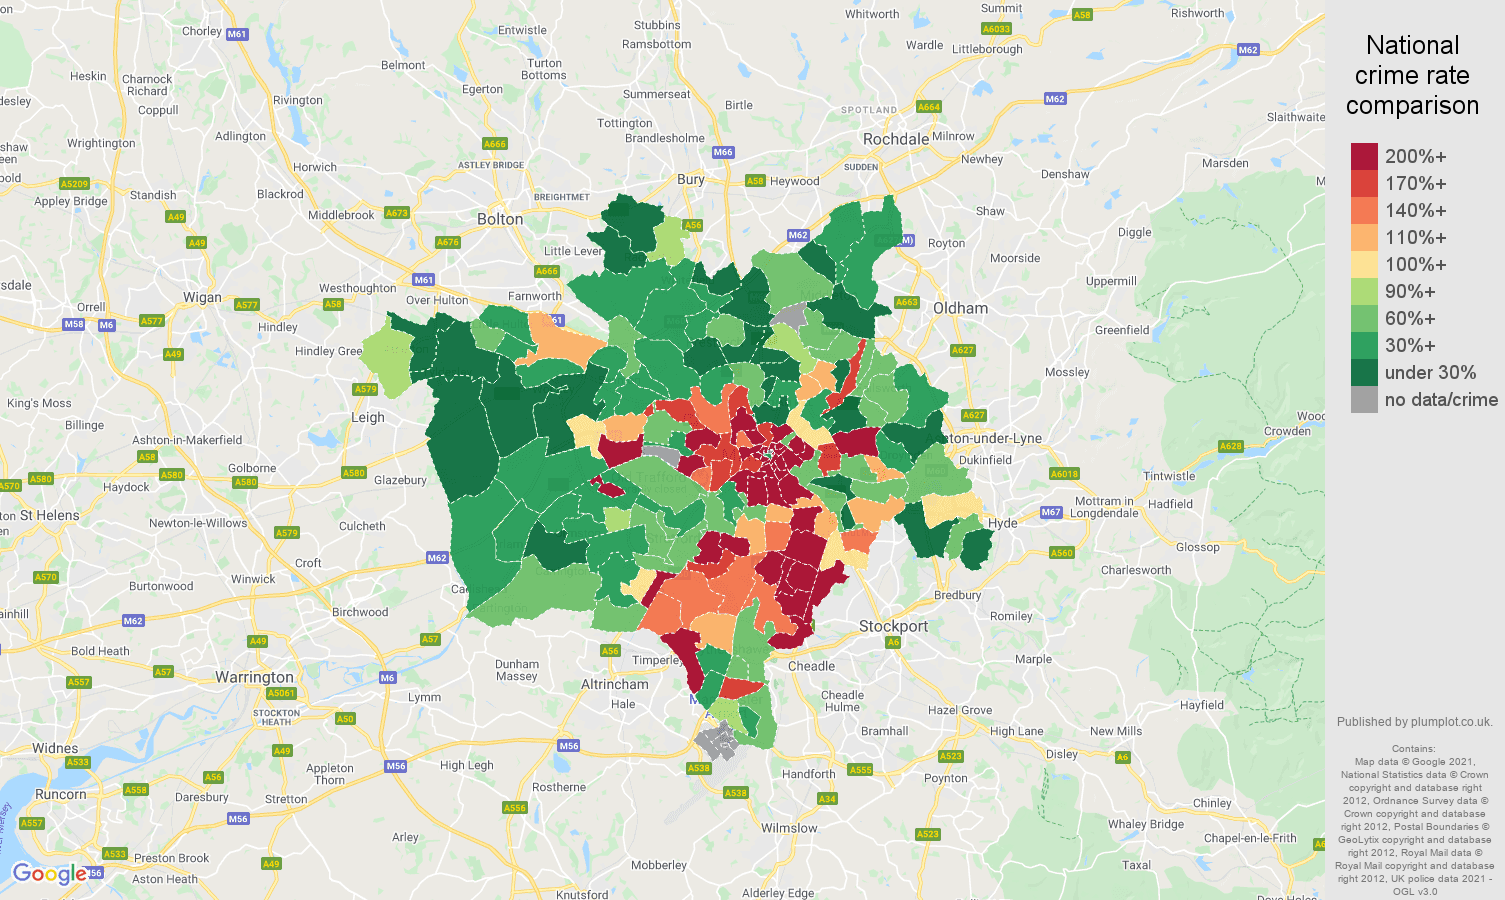 Manchester bicycle theft crime rate comparison map